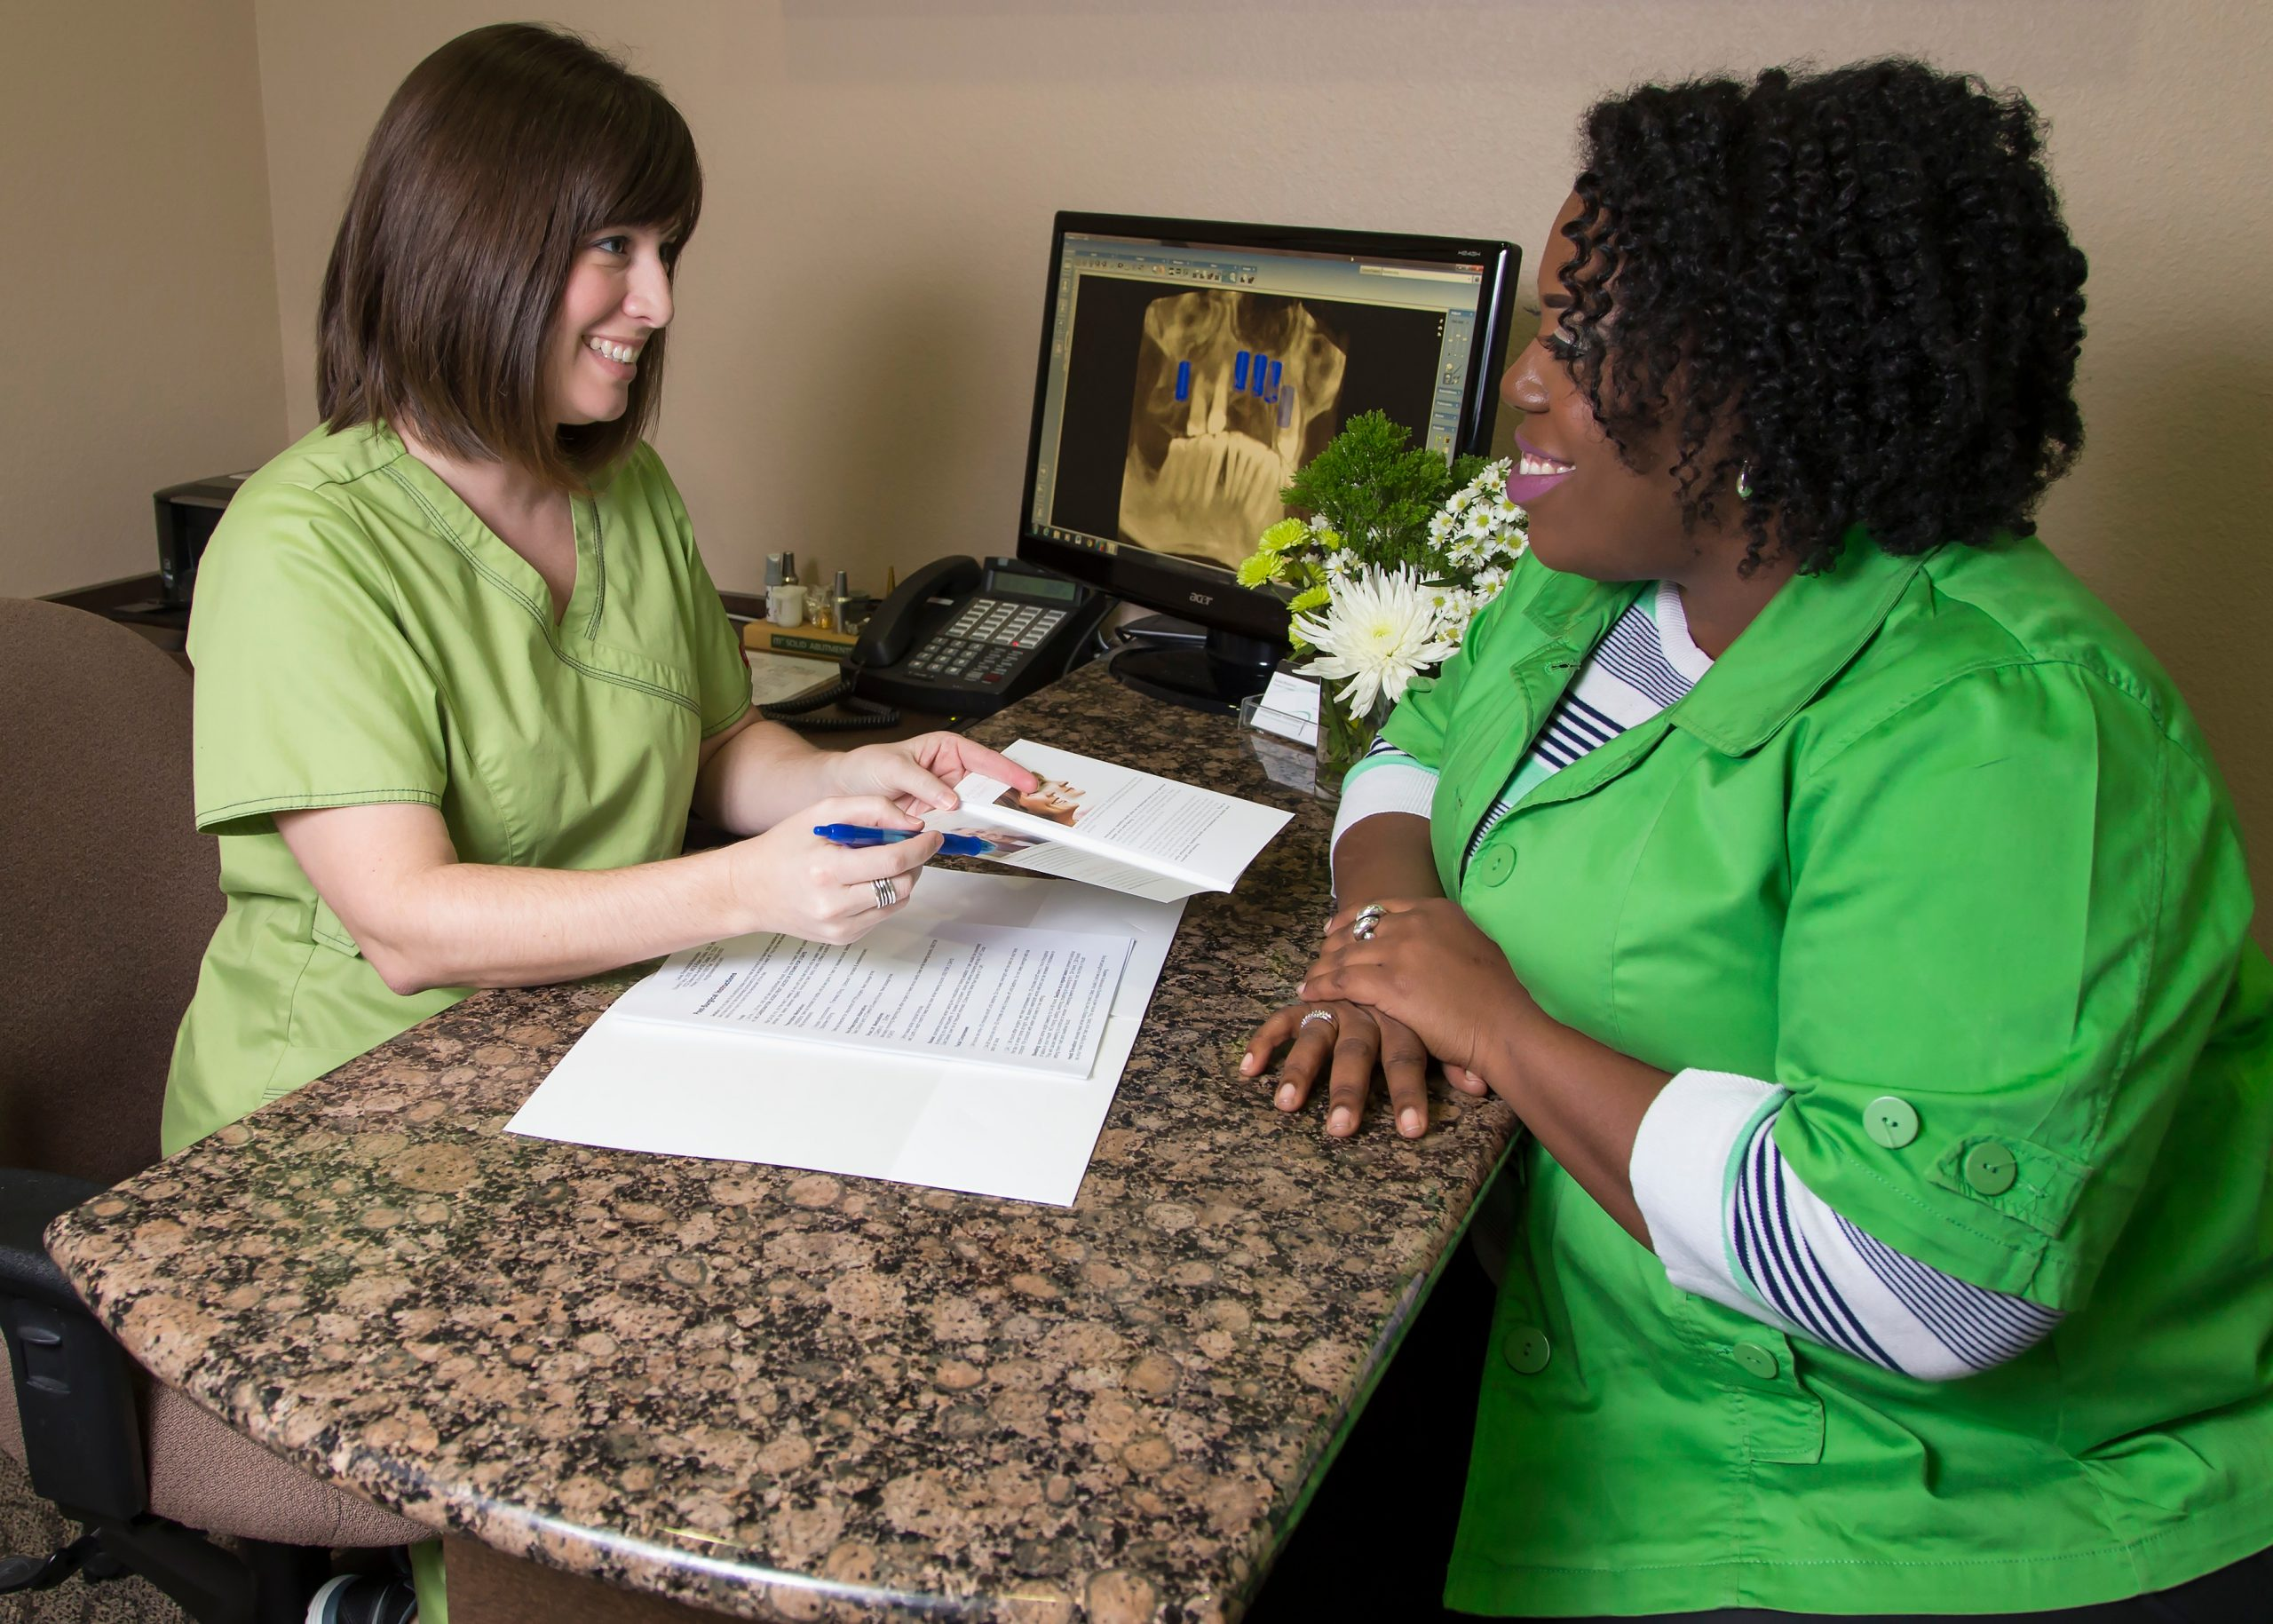 A patient and staff talking across a desk